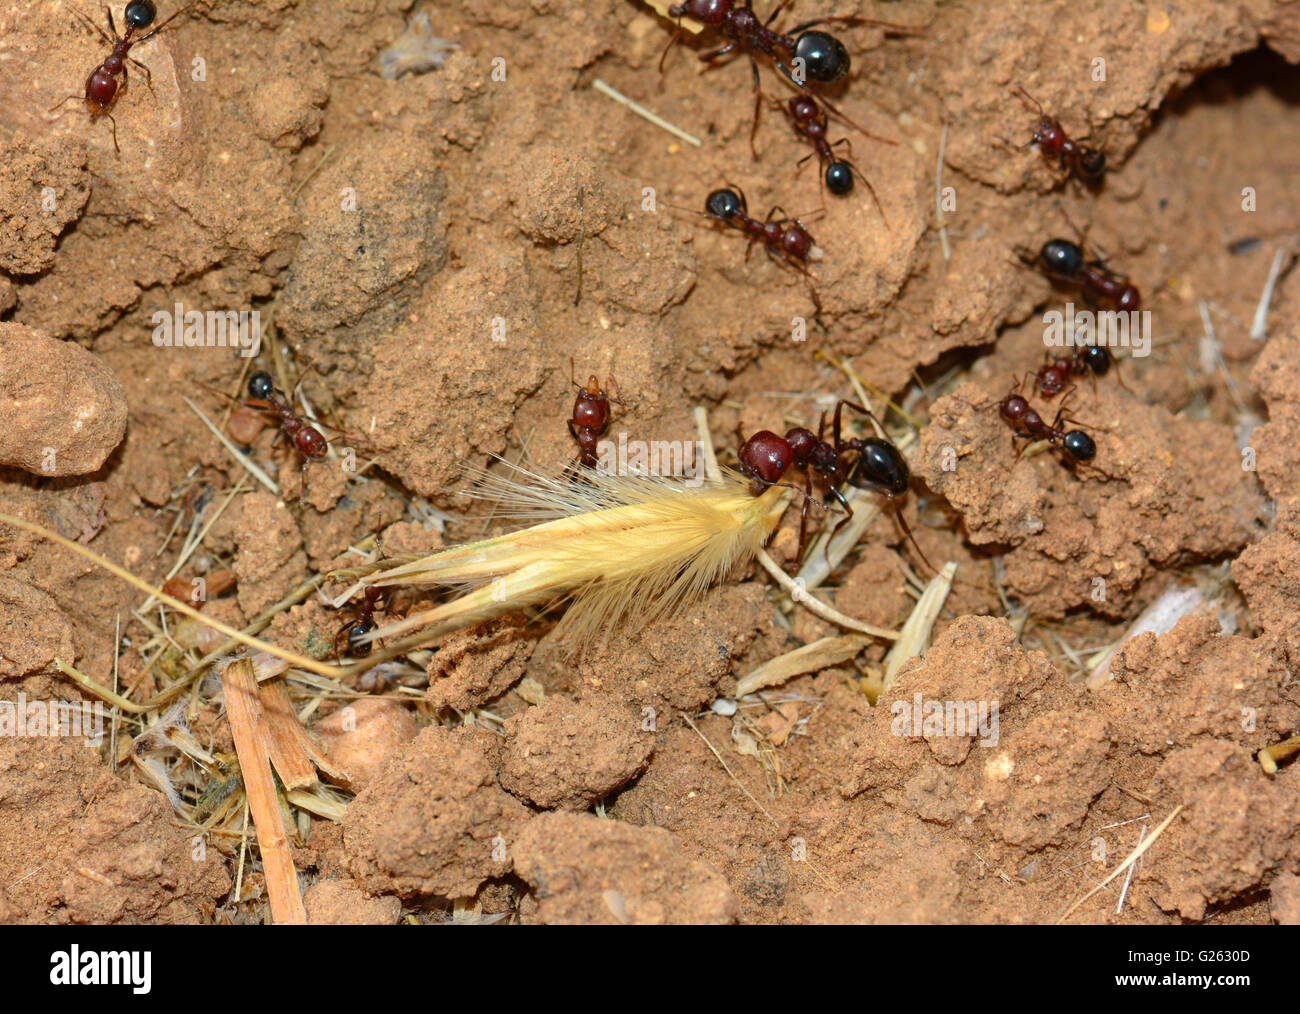 Ant collect food - Stock Image